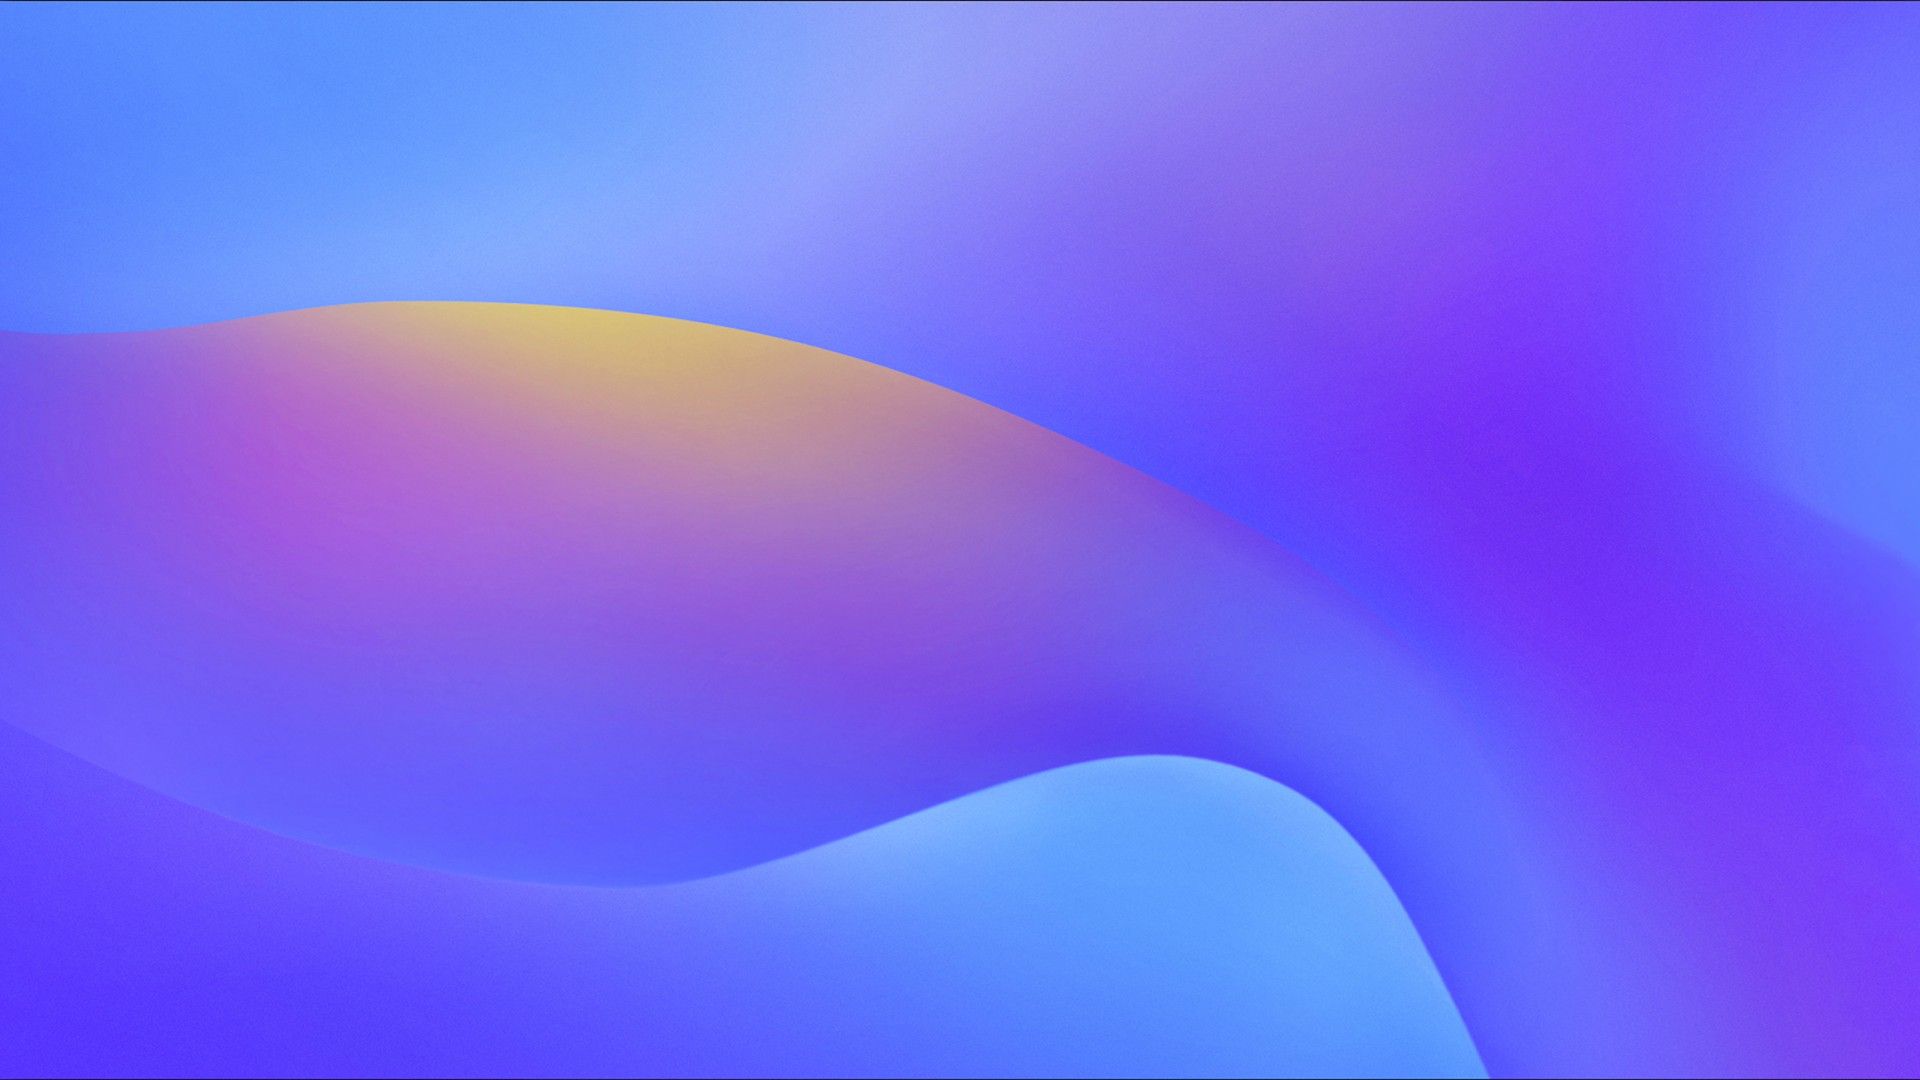 Wallpaper abstract, wave, Huawei P Smart Plus, HD, OS #20722